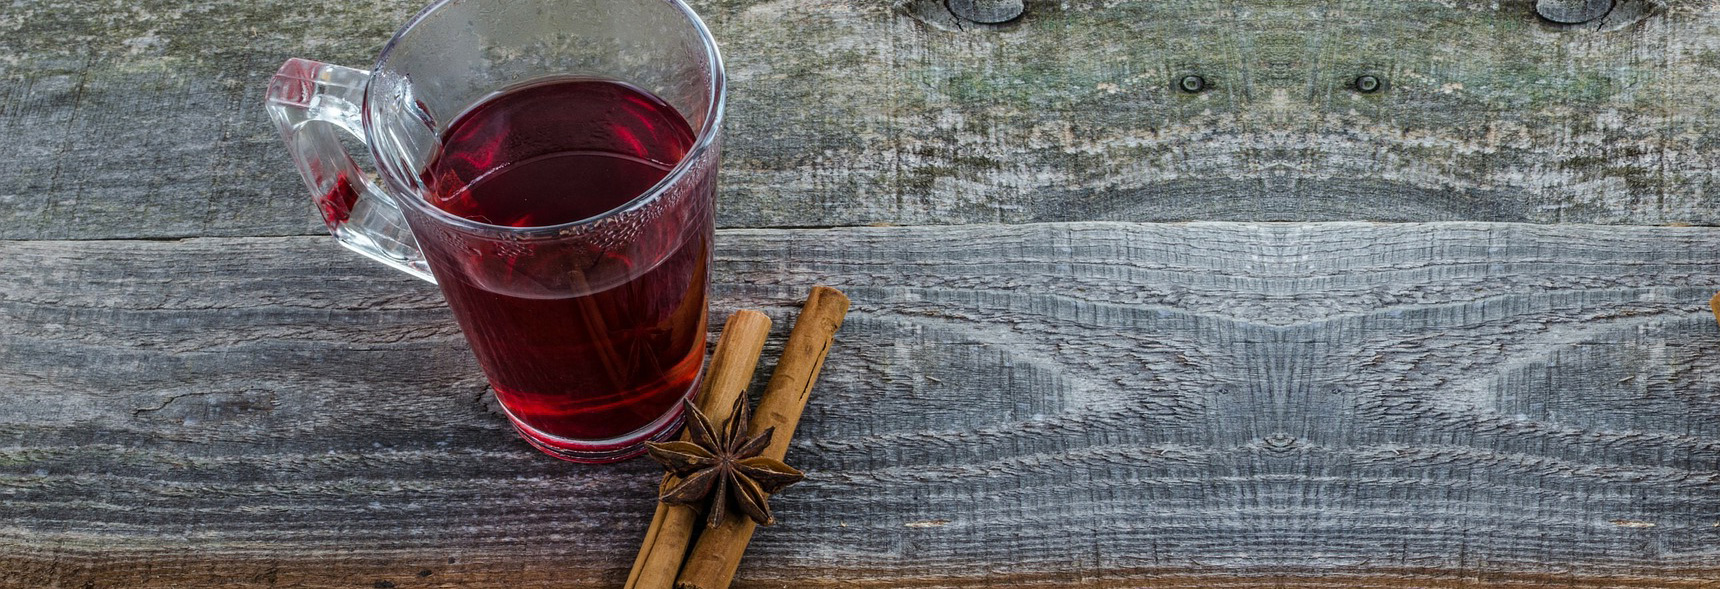 Ways to re-brew tea bags that you did not know about